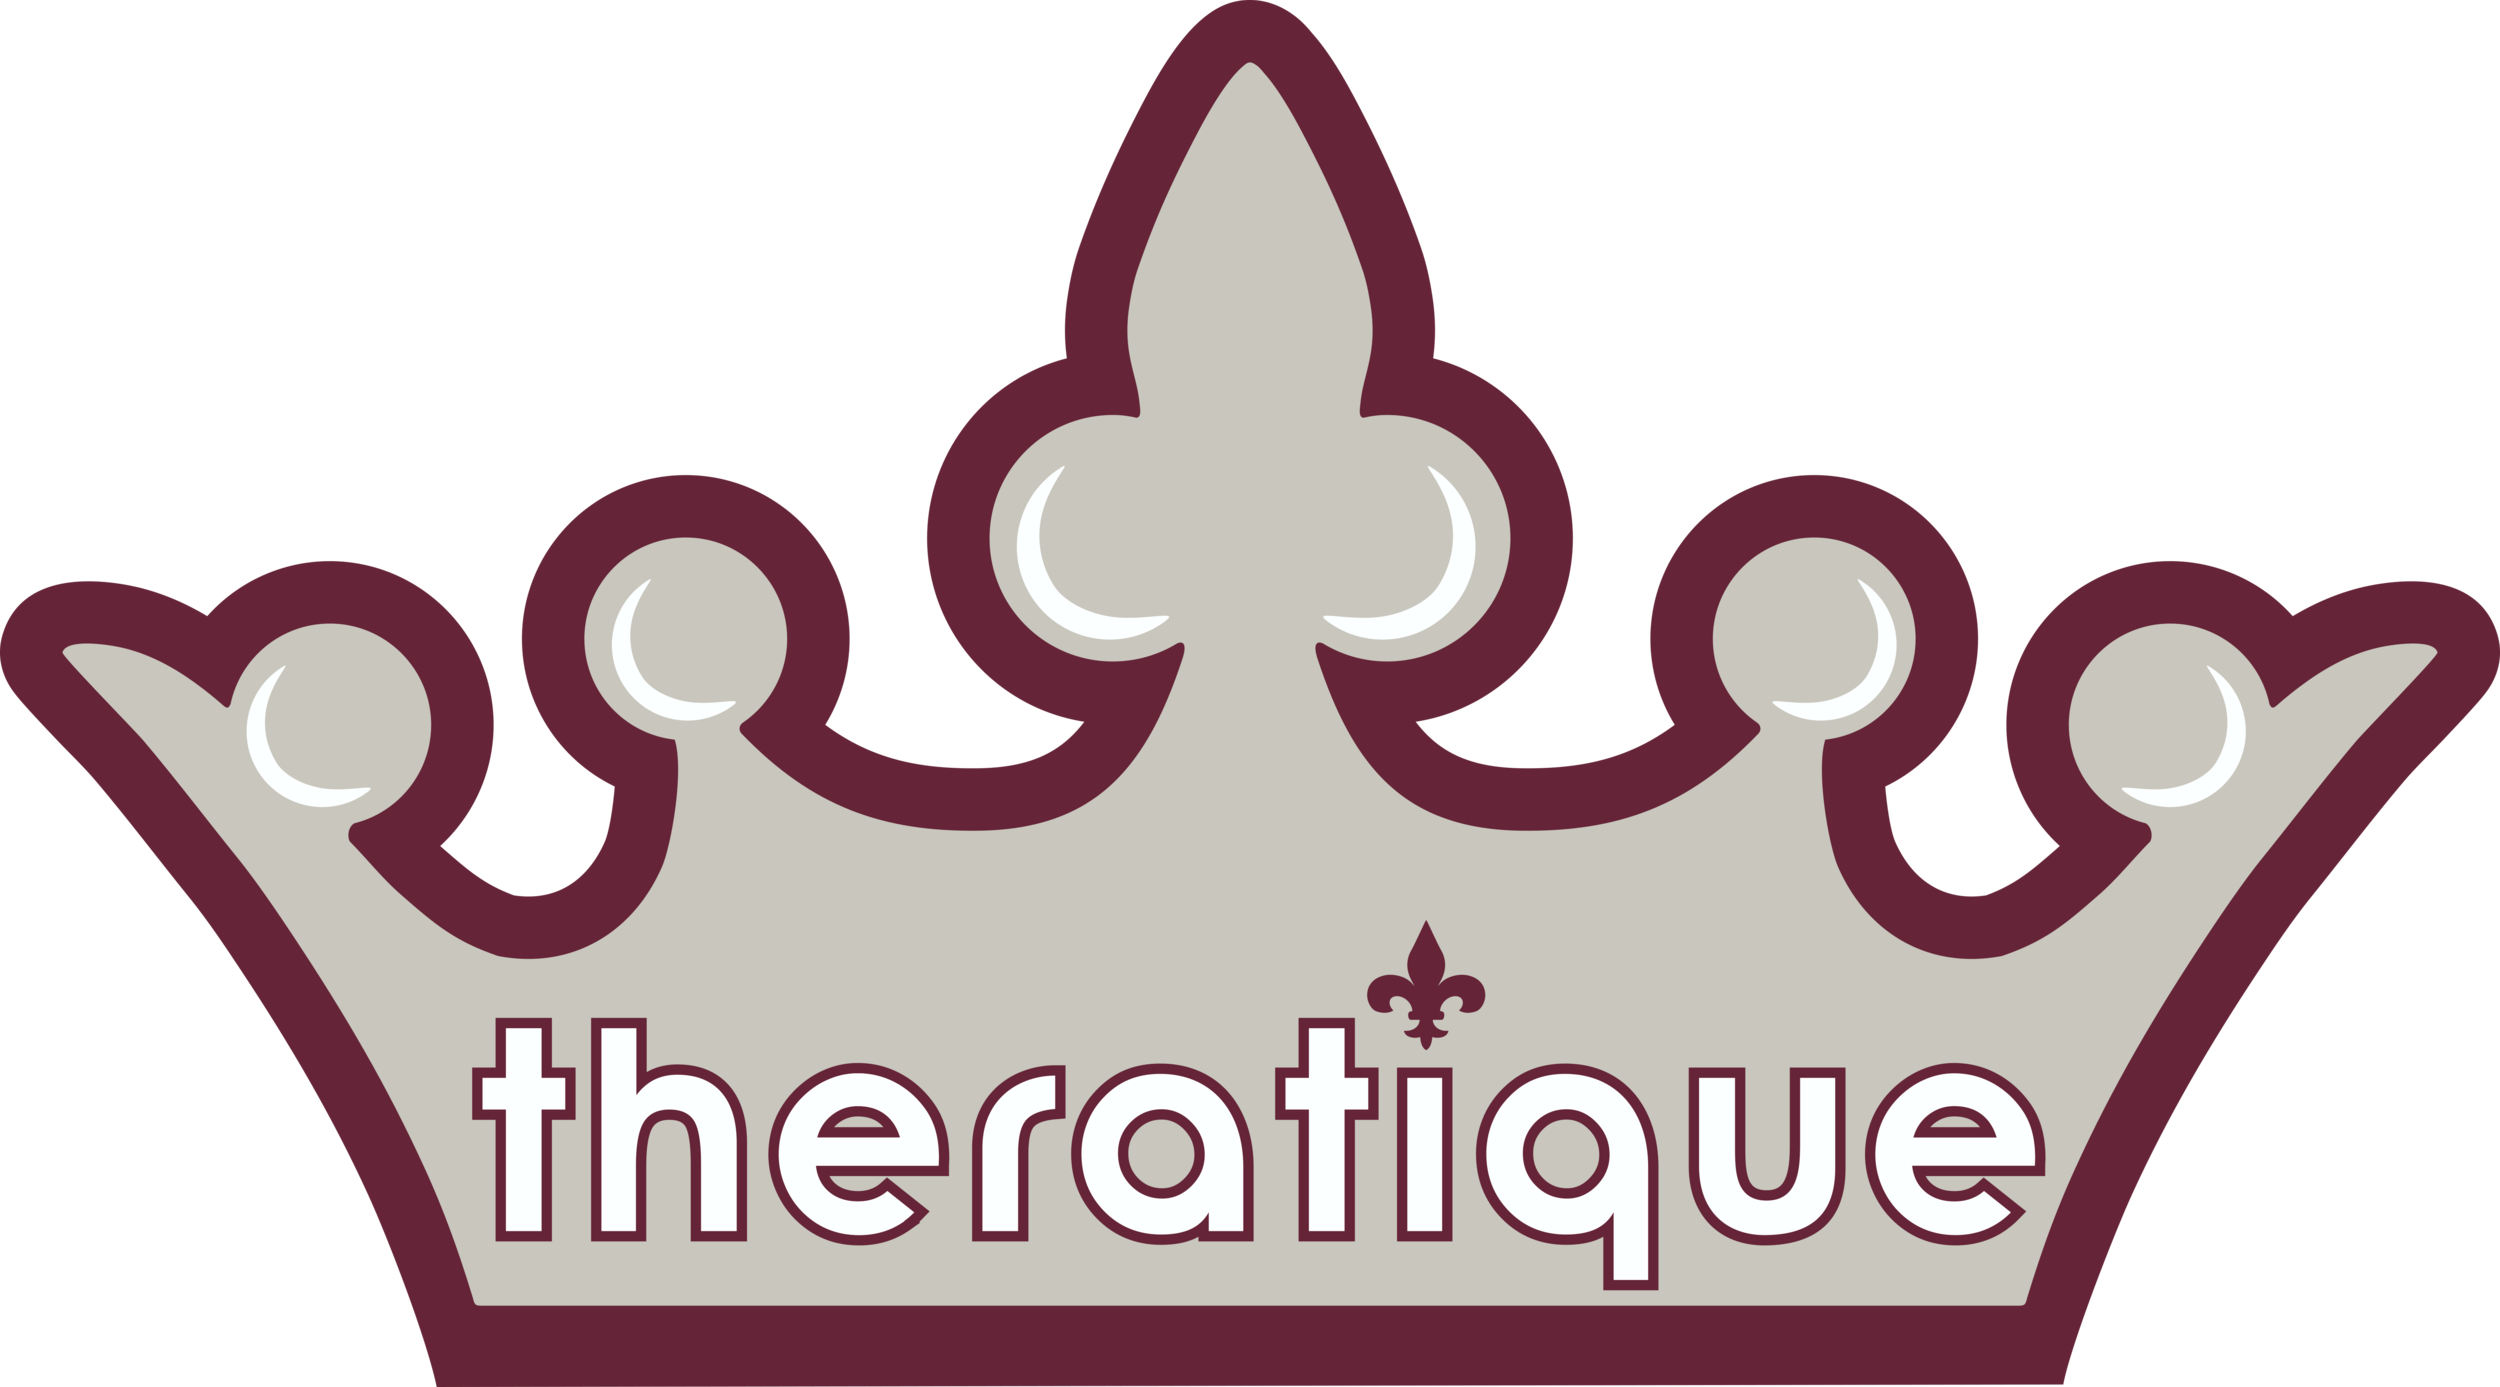 Theratique